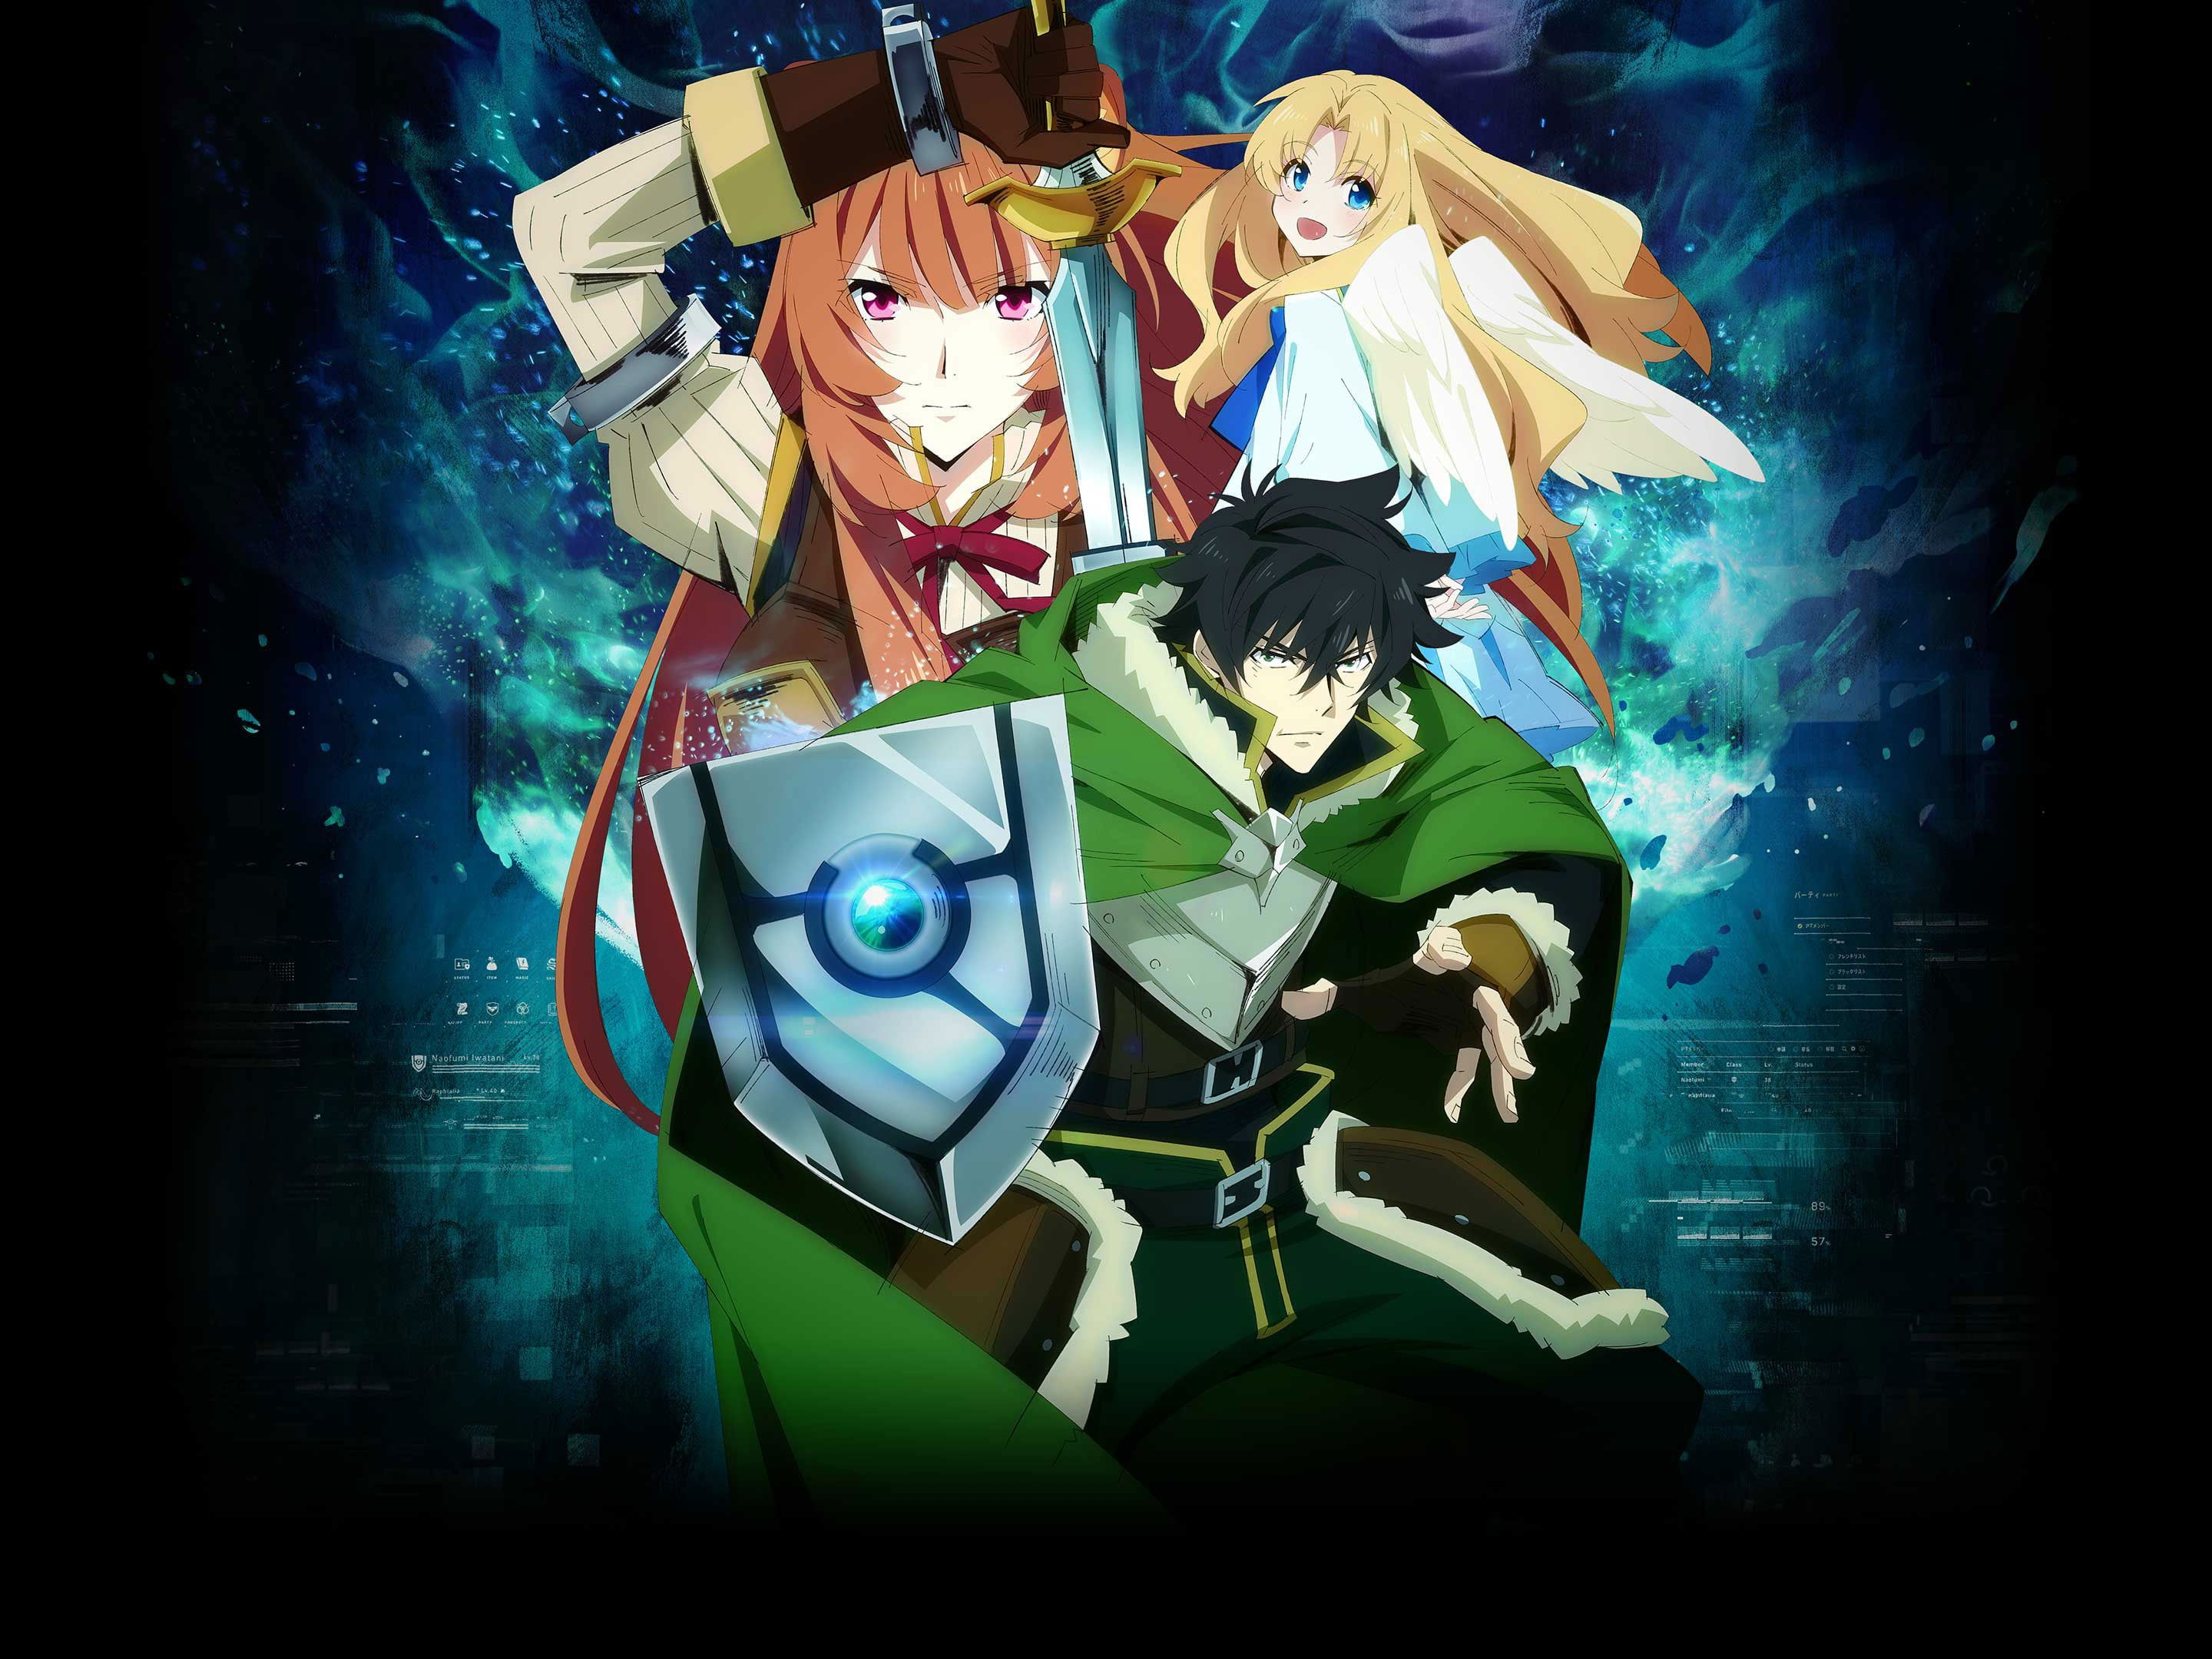 Anime The Rising Of The Shield Hero Filo The Rising Of The Shield Hero Naofumi Iwatani Raphtalia The Rising Of The Shield Her Anime Hero Poster Anime Shows